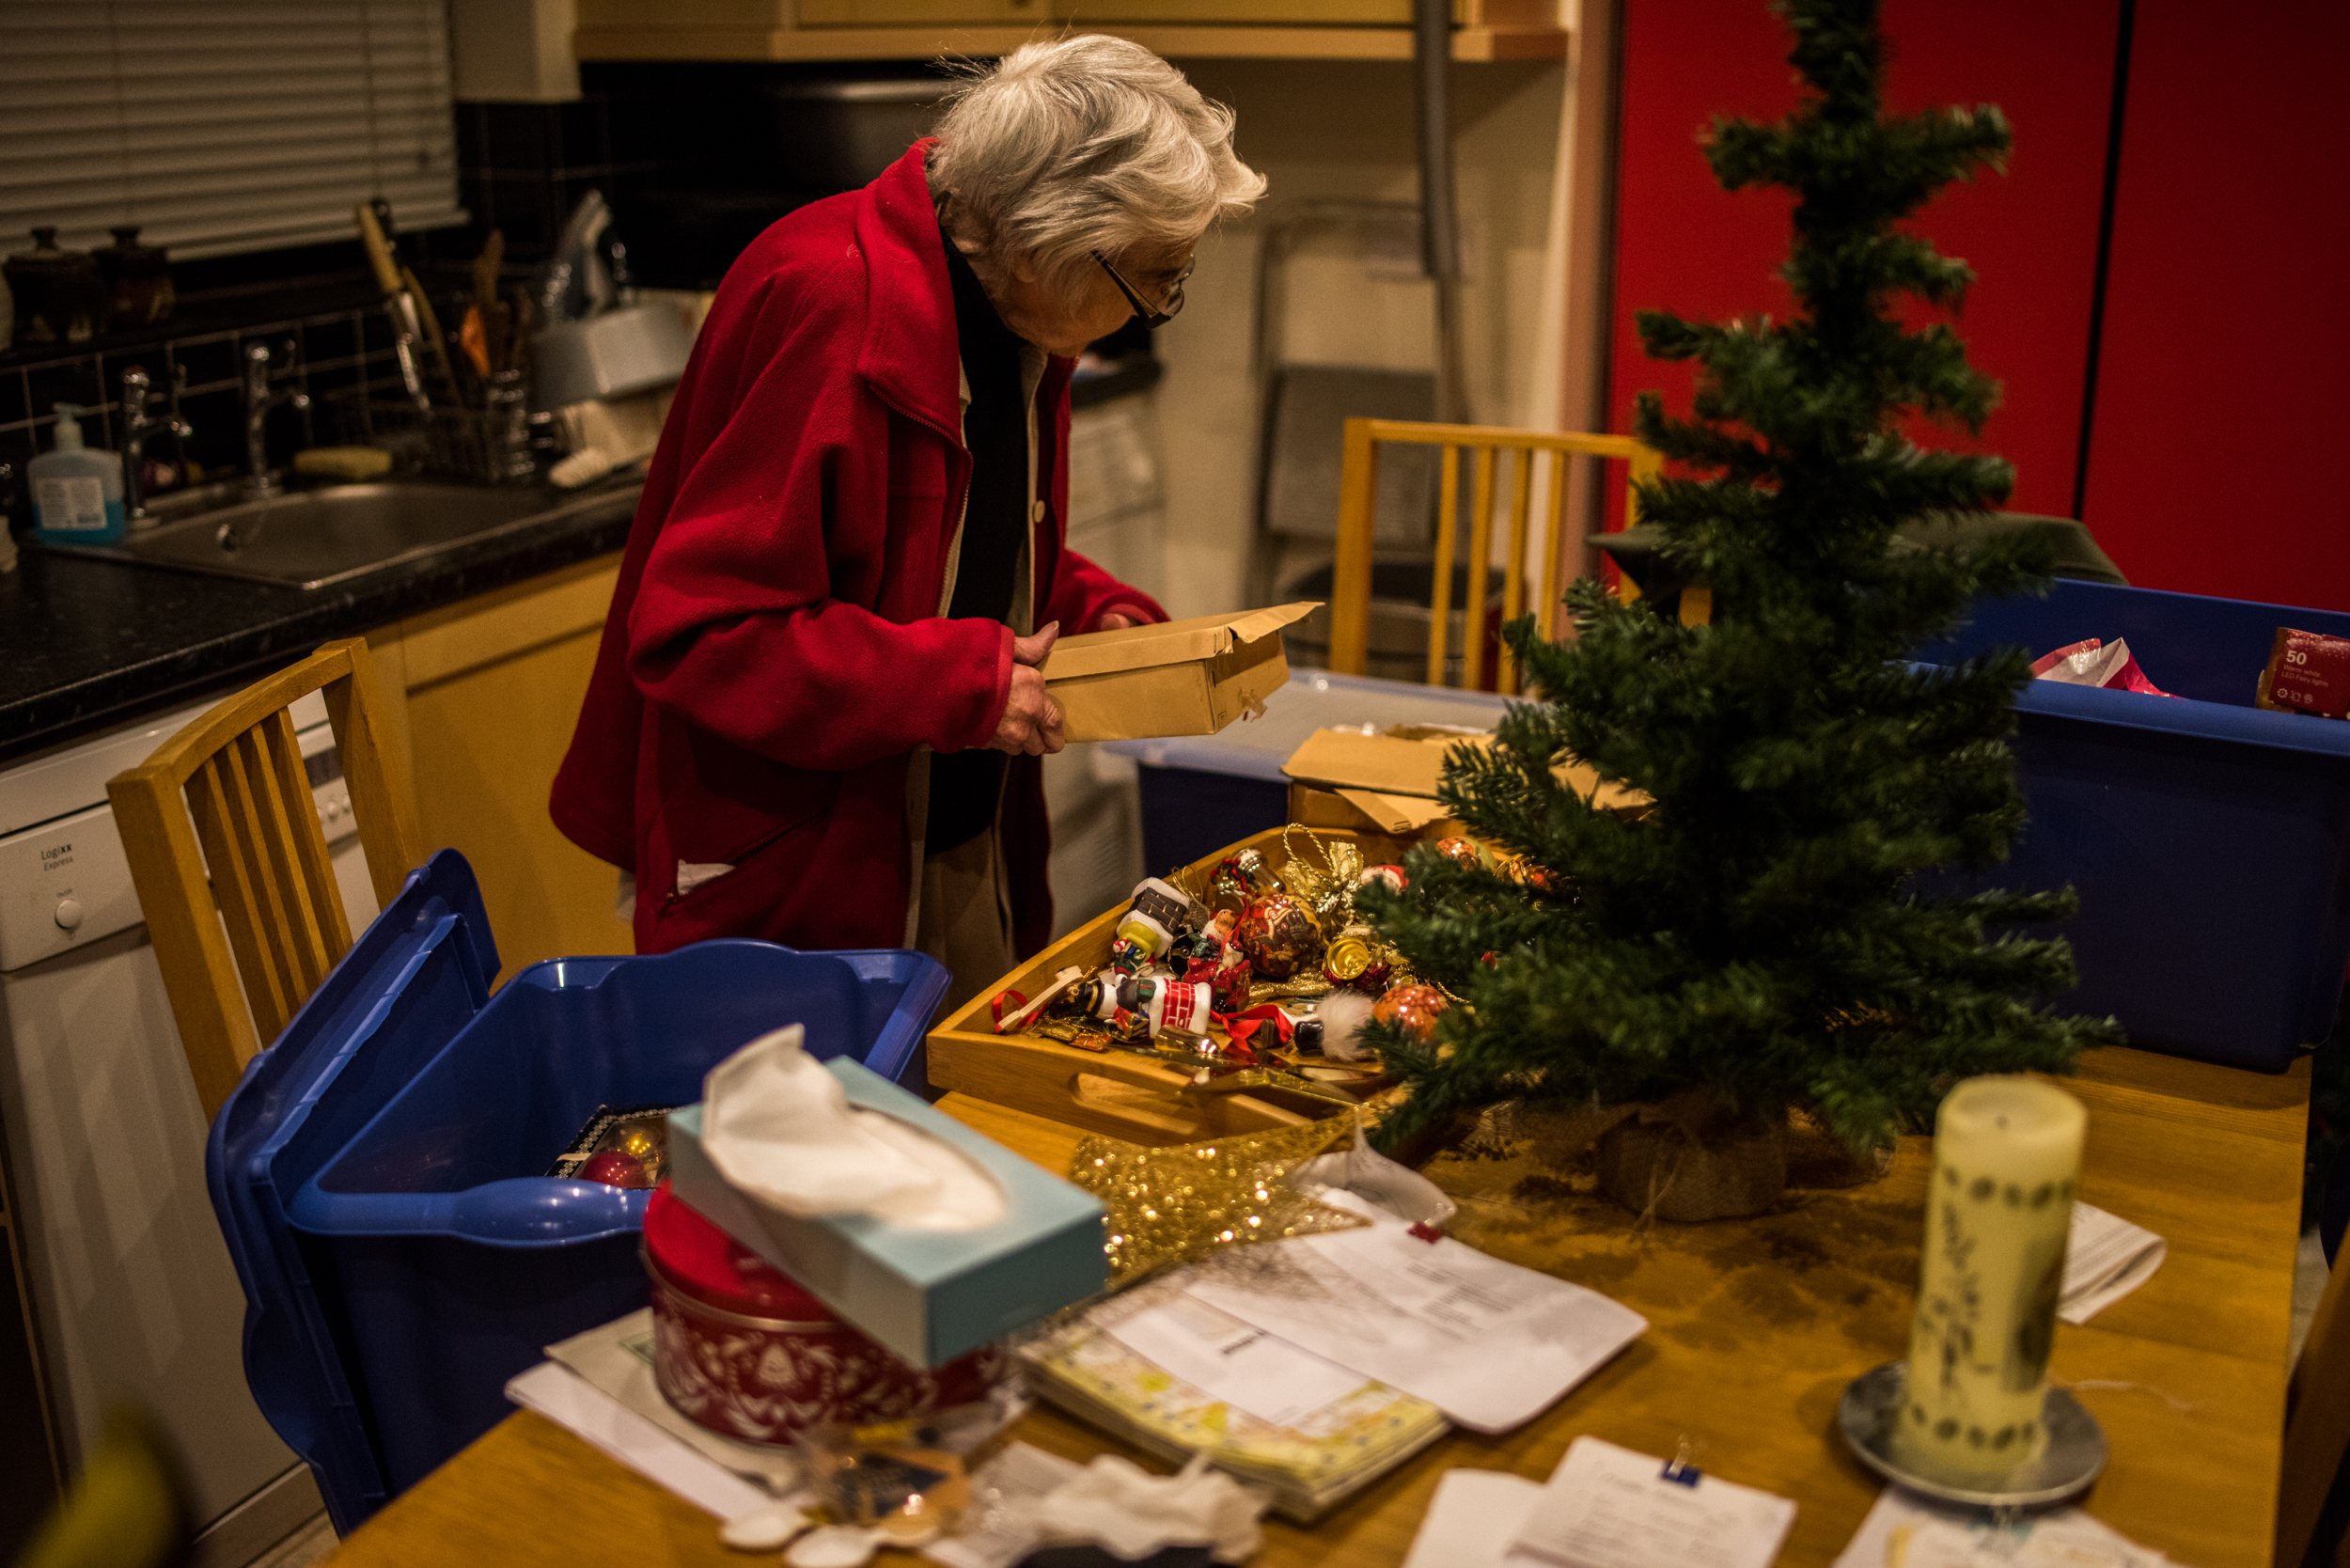 Packing away Christmas decorations